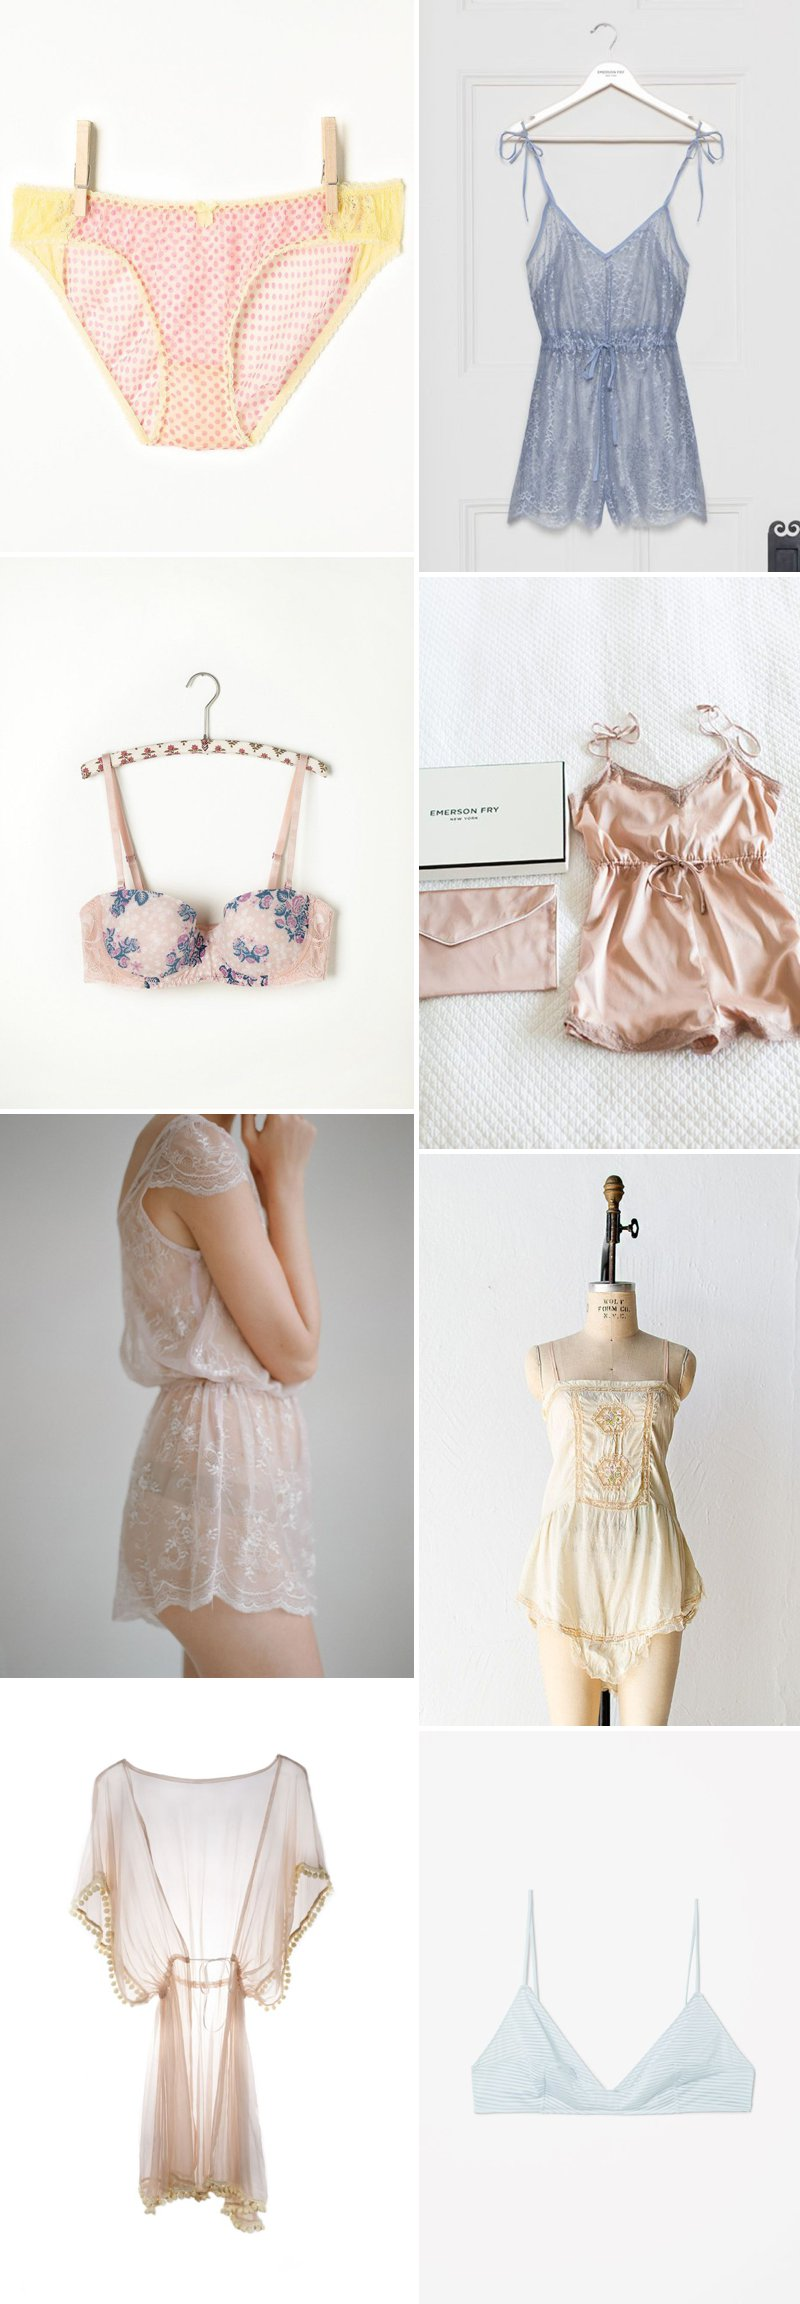 fd8c191e324c A Beautiful Lingerie Inspiration And Fashion Post Sharing The Prettiest  Underwear For Your Wedding Night And